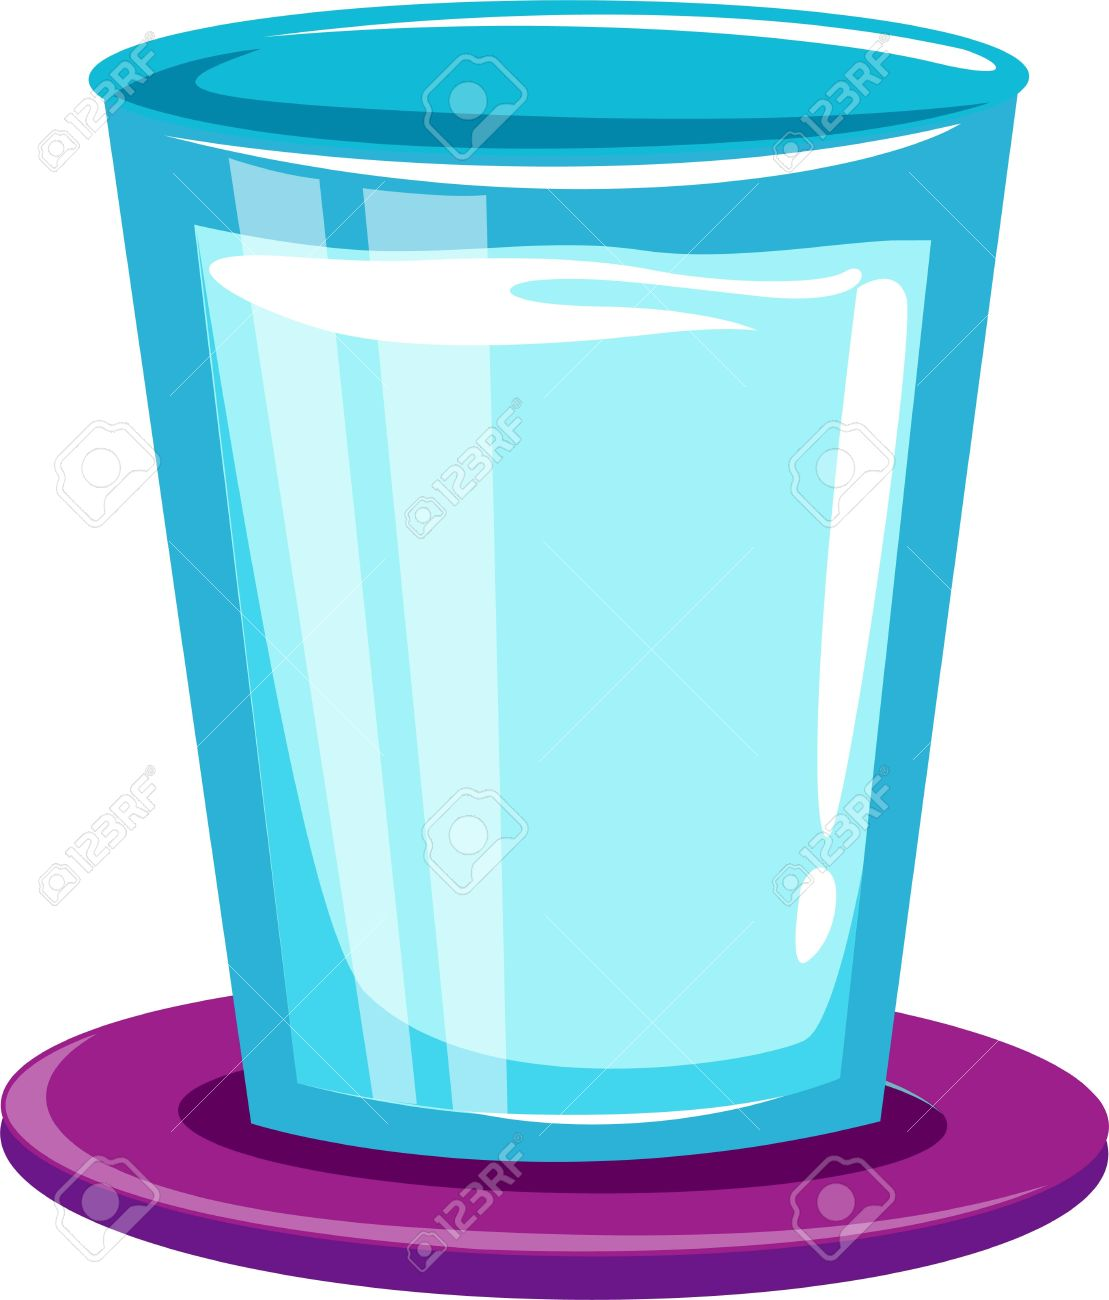 Glass cylinder clipart #2